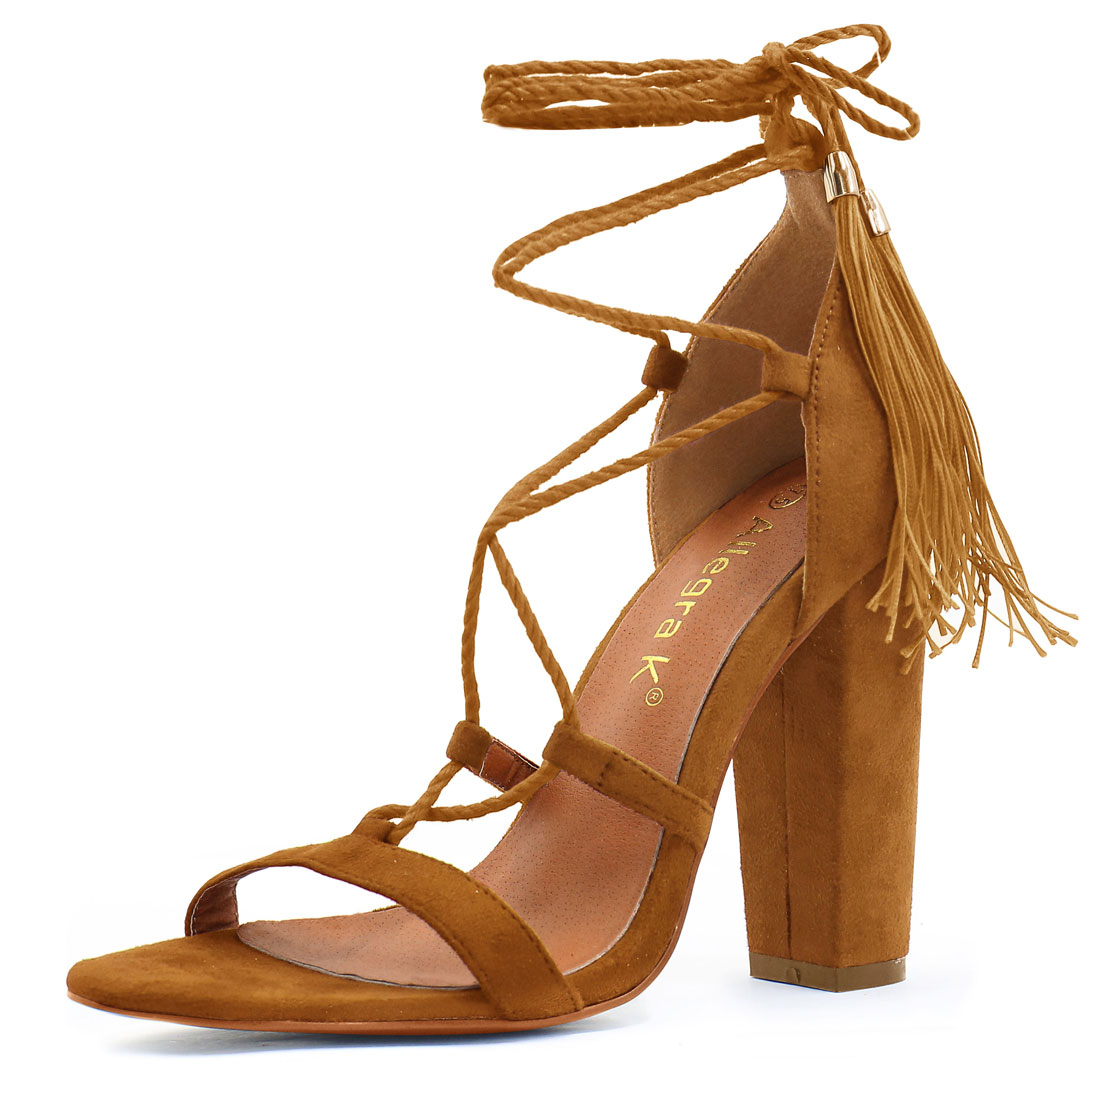 Women Chunky High Heel Tassel Closure Lace Up Sandals Camel US 9.5